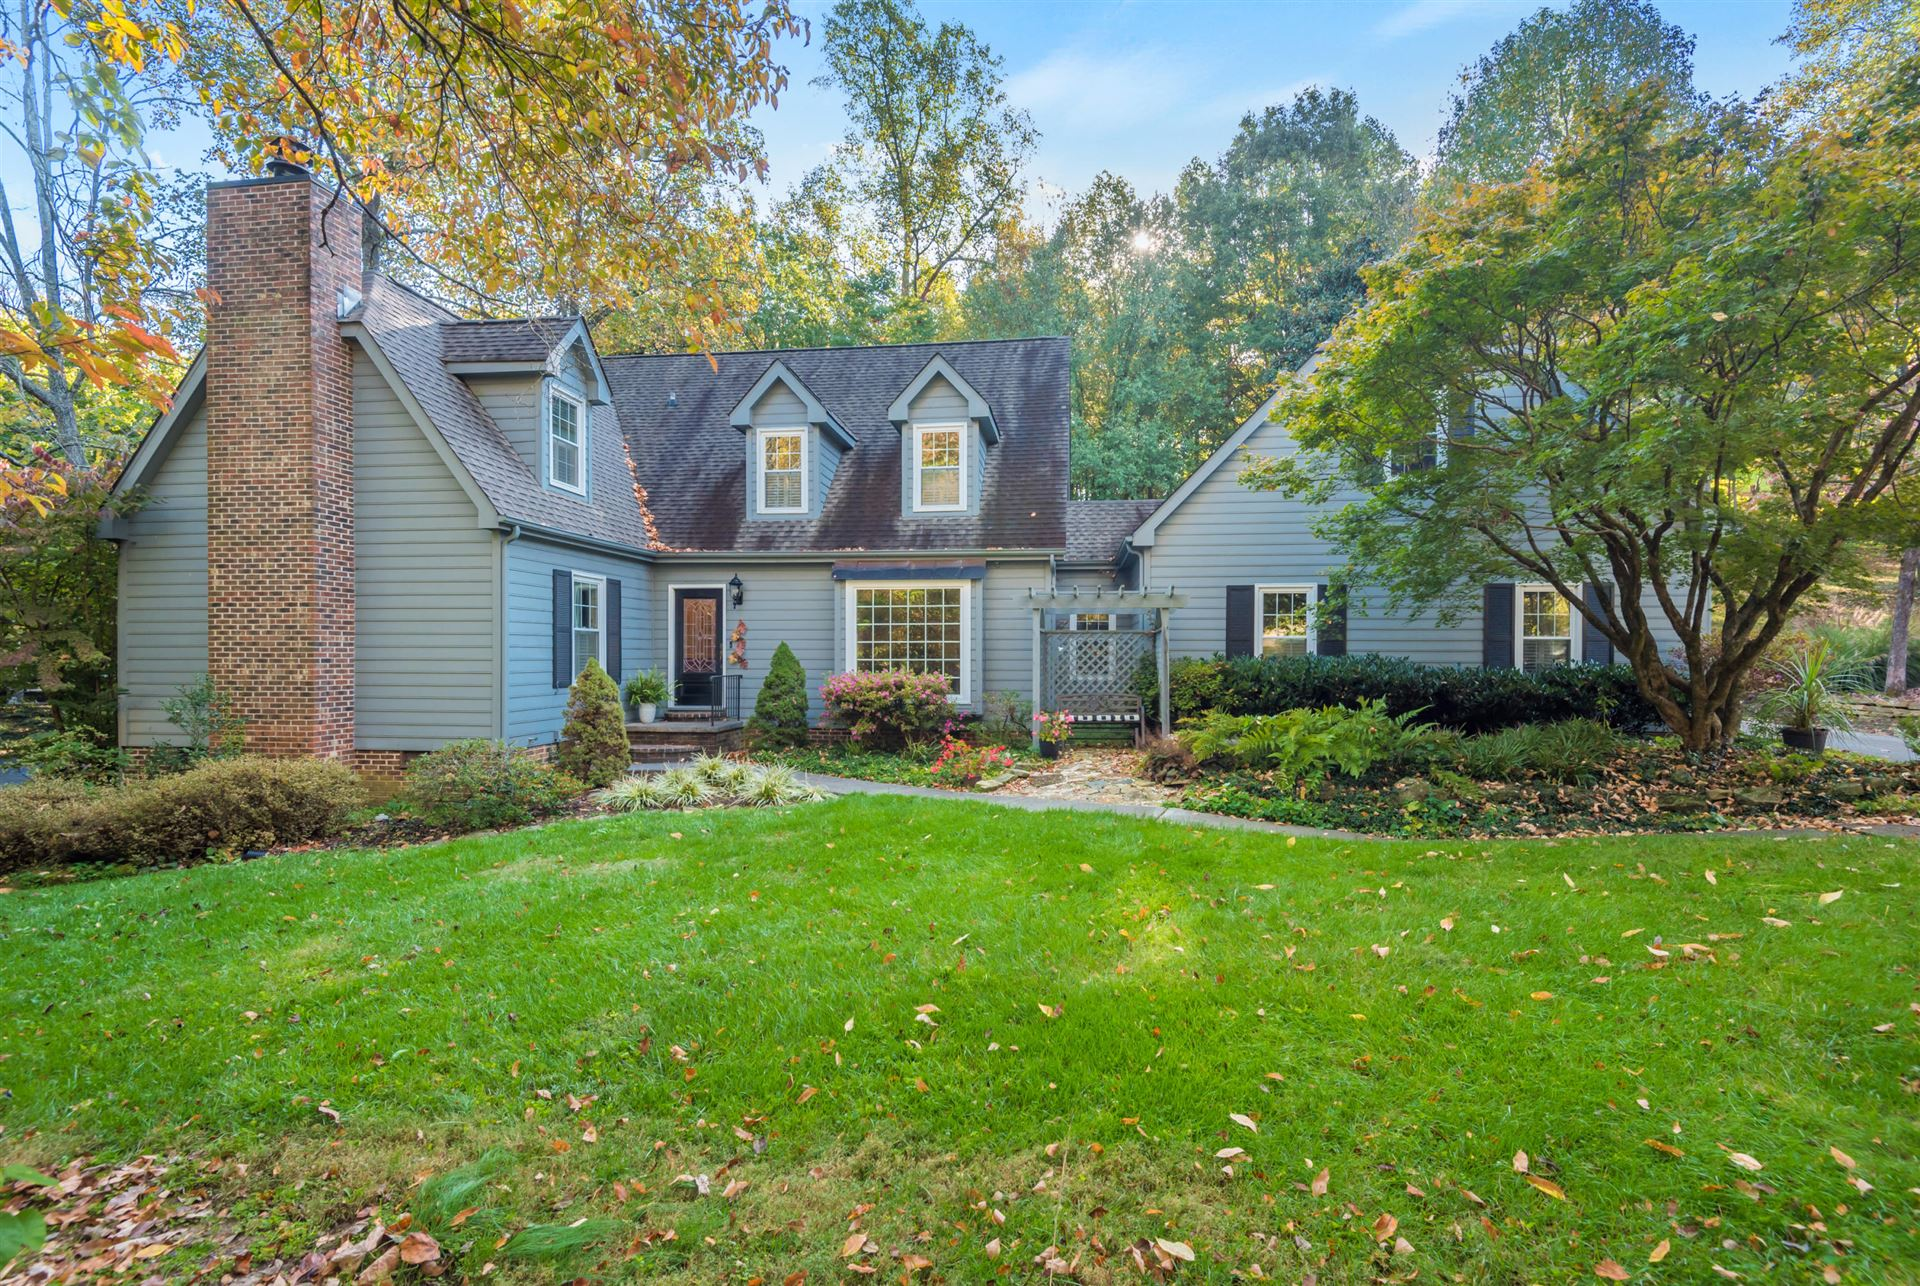 Photo of 12216 Torrey Pines Point, Knoxville, TN 37934 (MLS # 1133397)